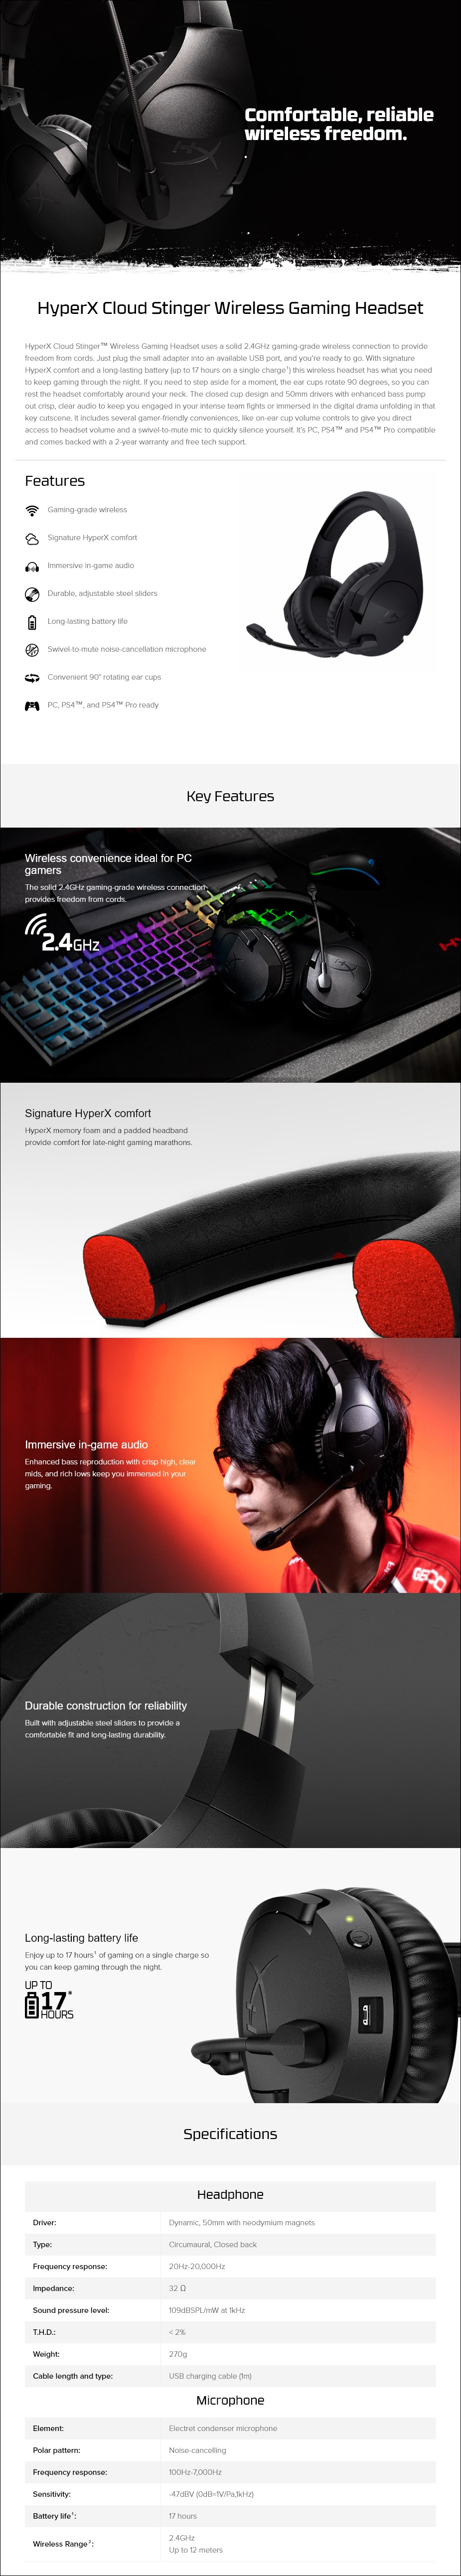 Kingston HyperX Cloud Stinger Wireless Gaming Headset - Overview 1